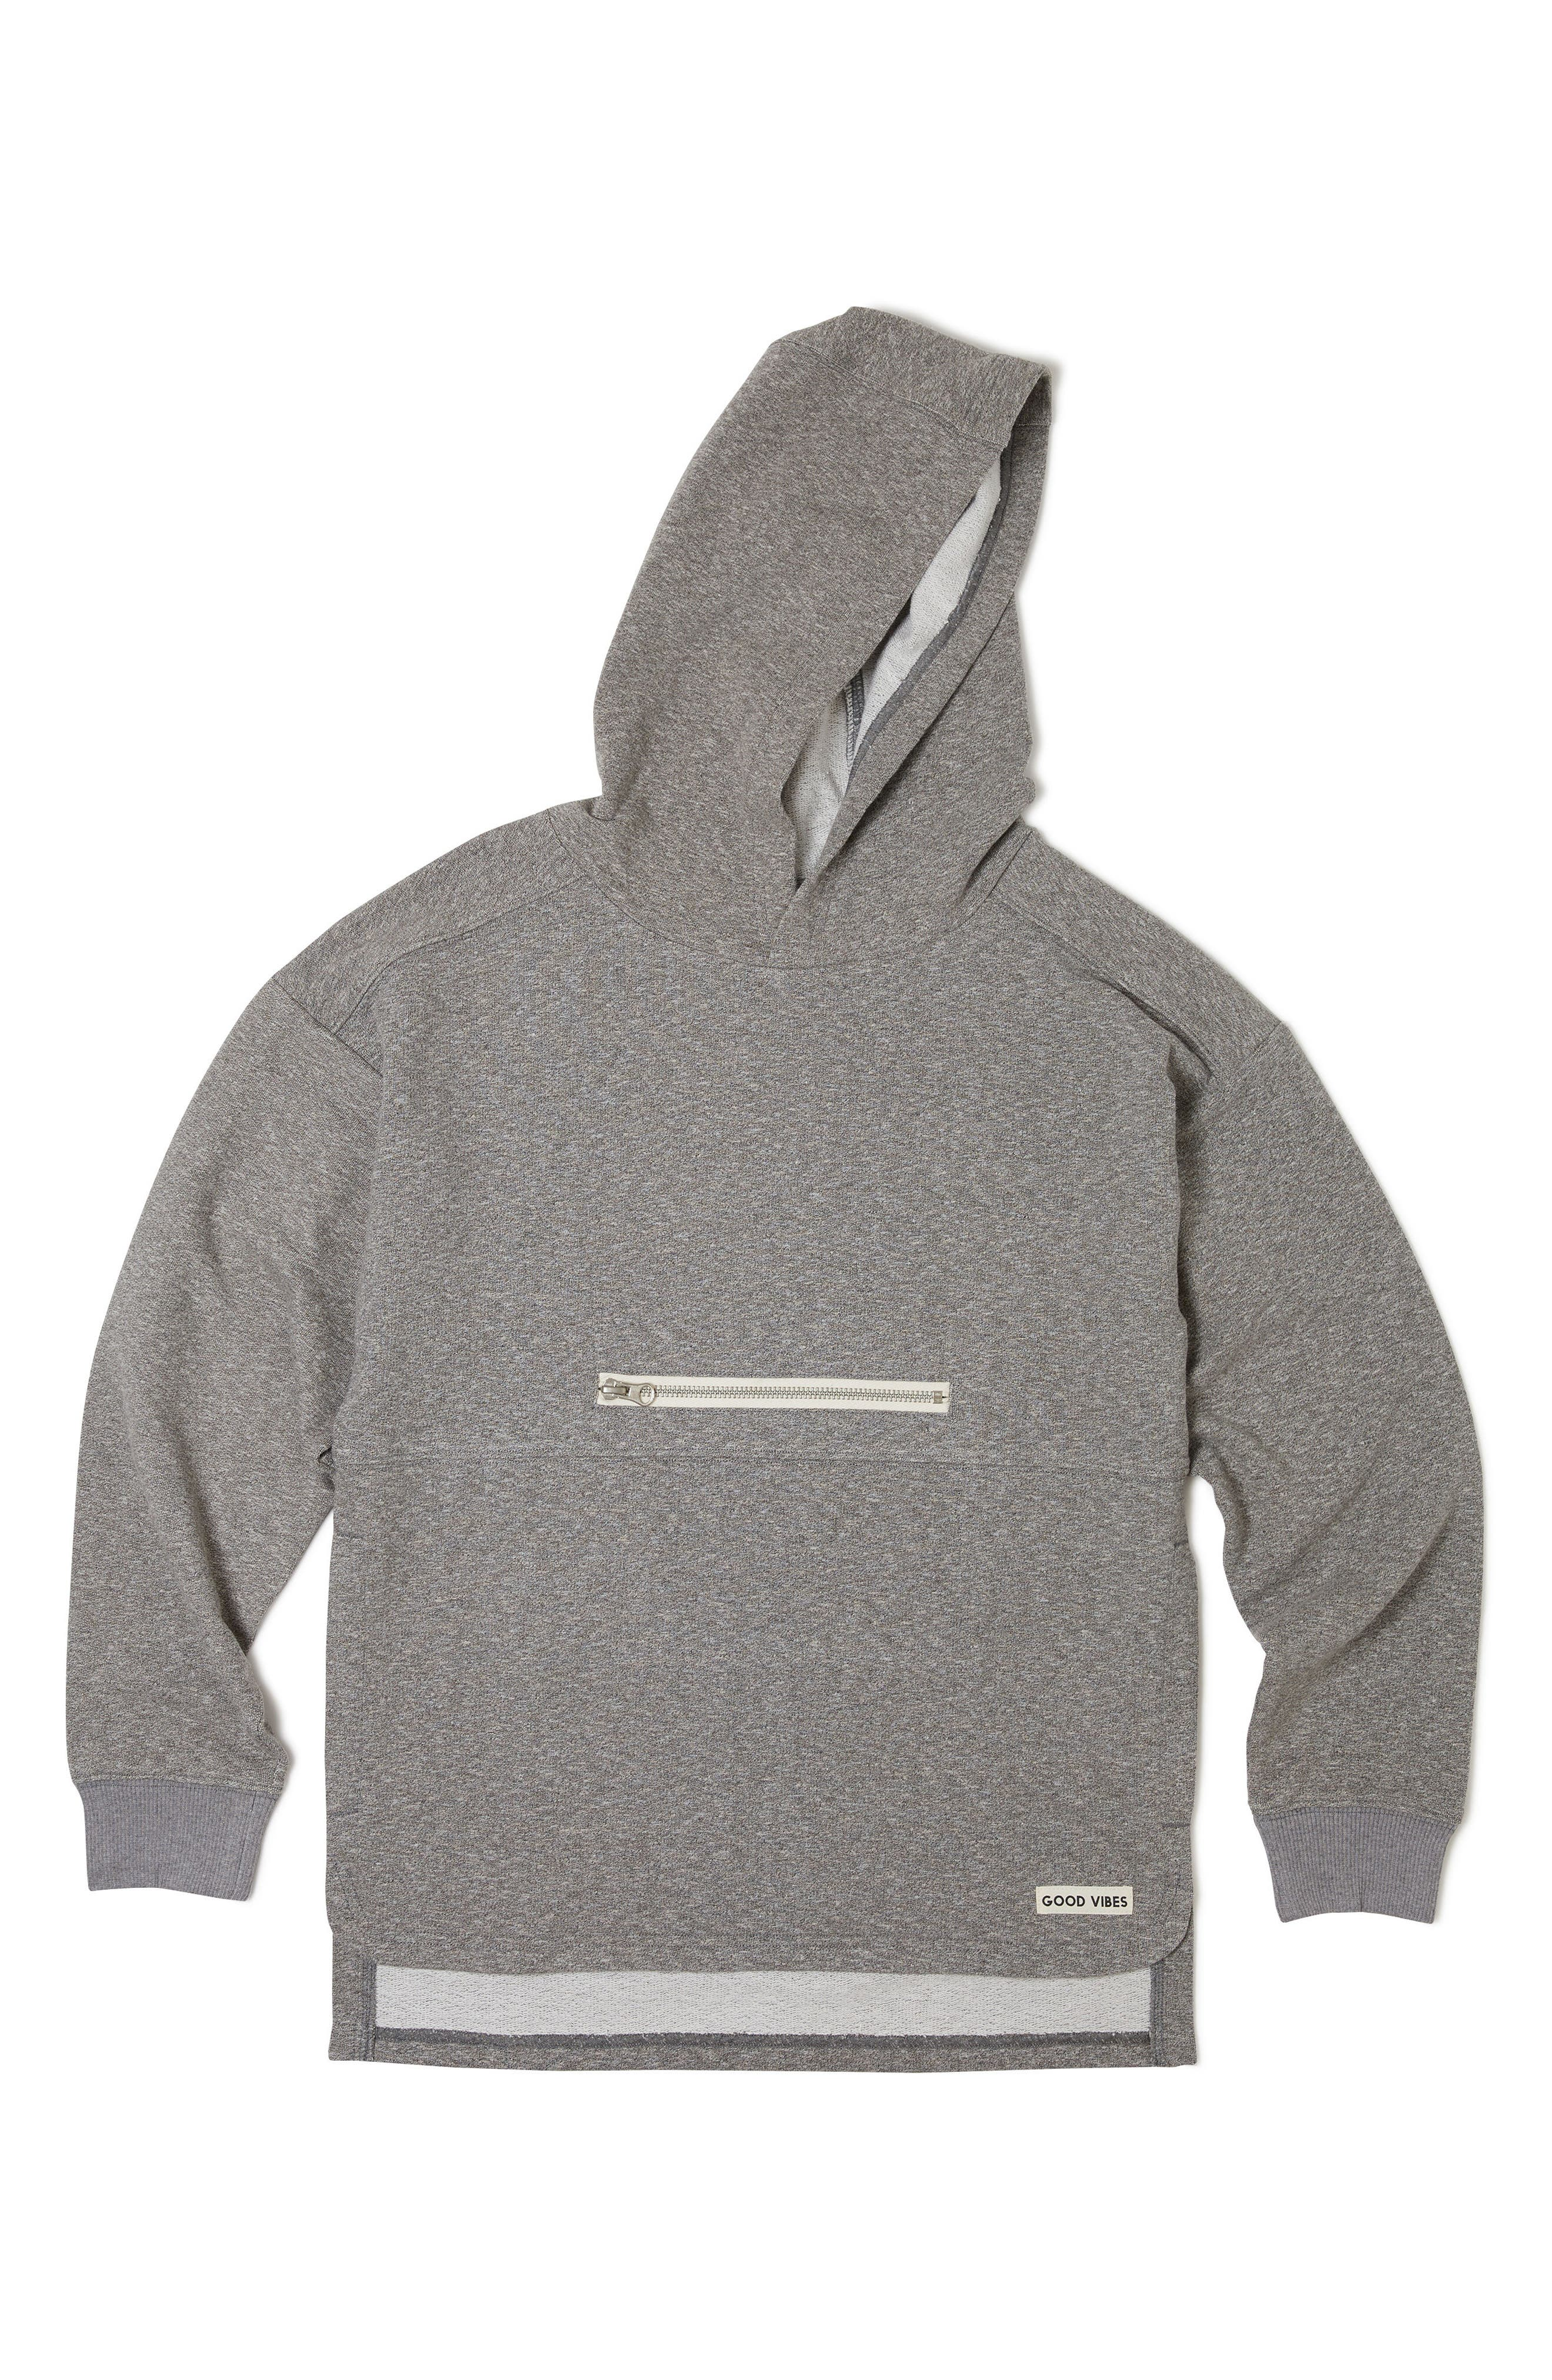 Cruise Hoodie,                             Main thumbnail 1, color,                             Heather Grey